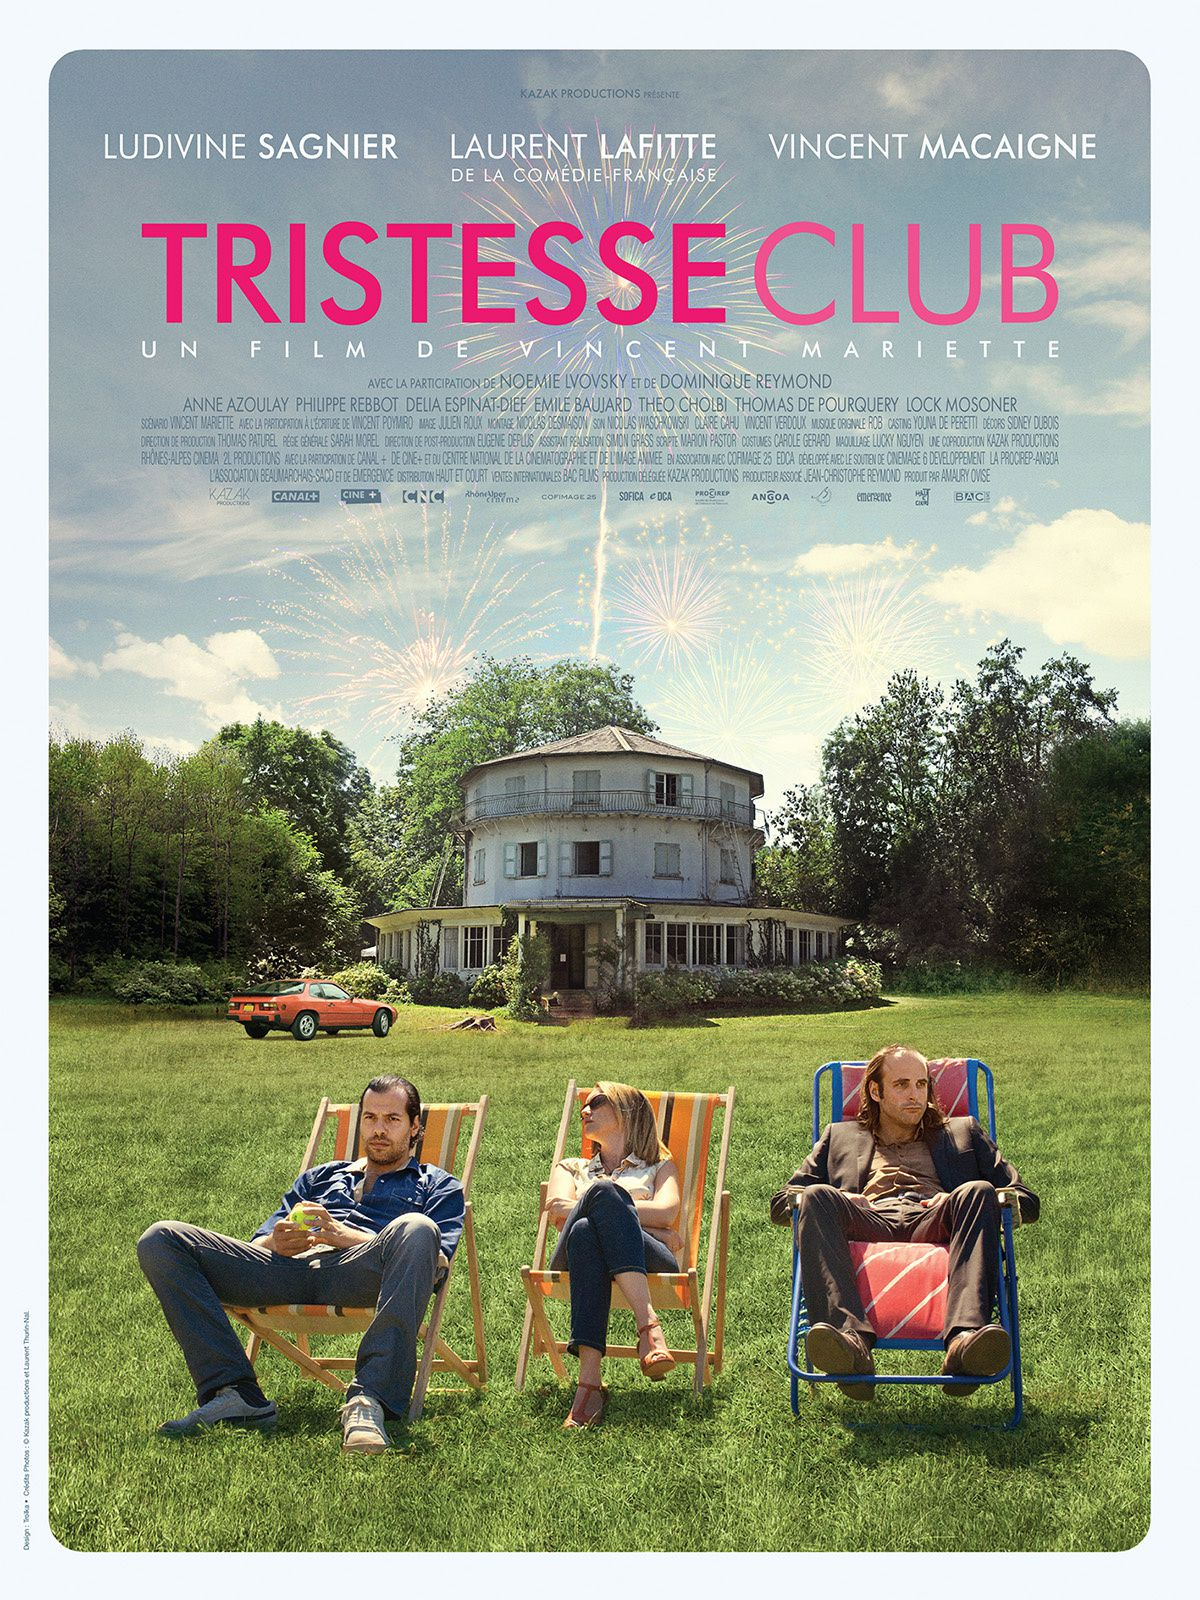 TRISTESSE CLUB / CINEMA / VINCENT MARIETTE / 2014